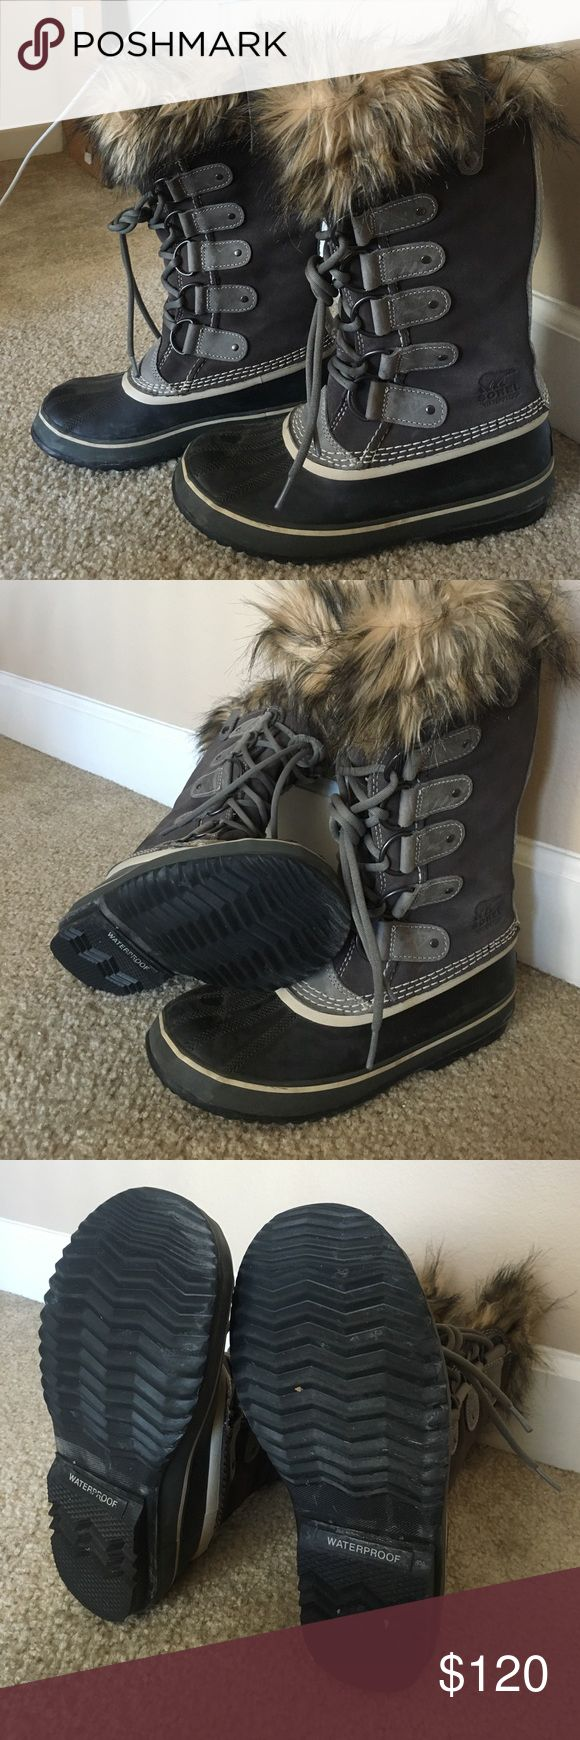 Sorel Boots Like new sorel boots. Joan of arctic style. Worn once last year, haven't worn this year. Sorel Shoes Winter & Rain Boots